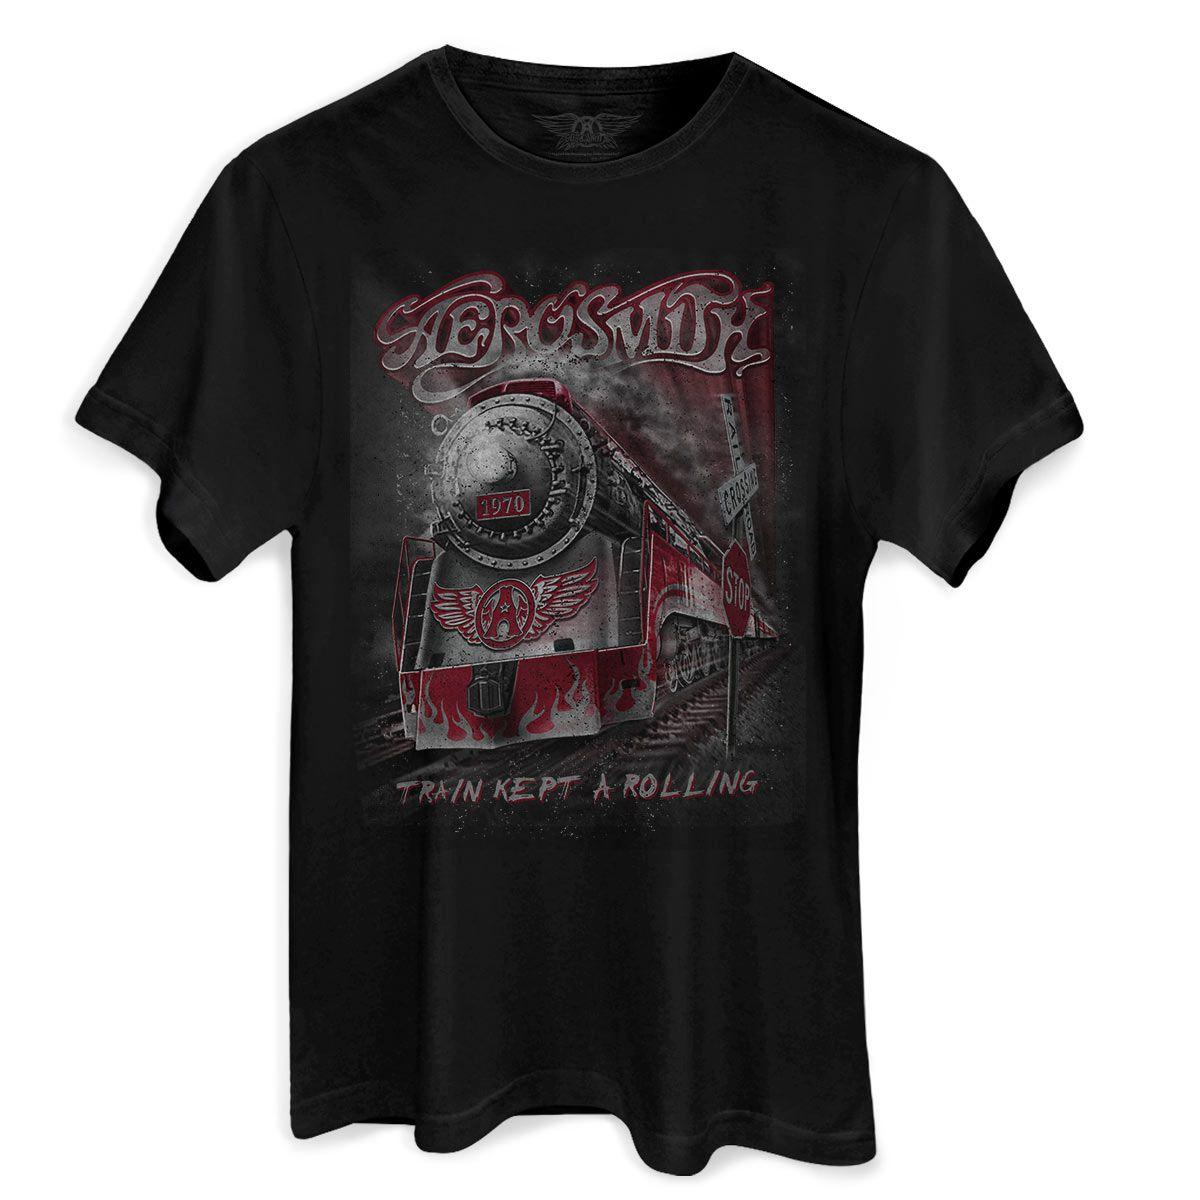 Camiseta Masculina Aerosmith Train Kept a Rolling  - bandUP Store Marketplace